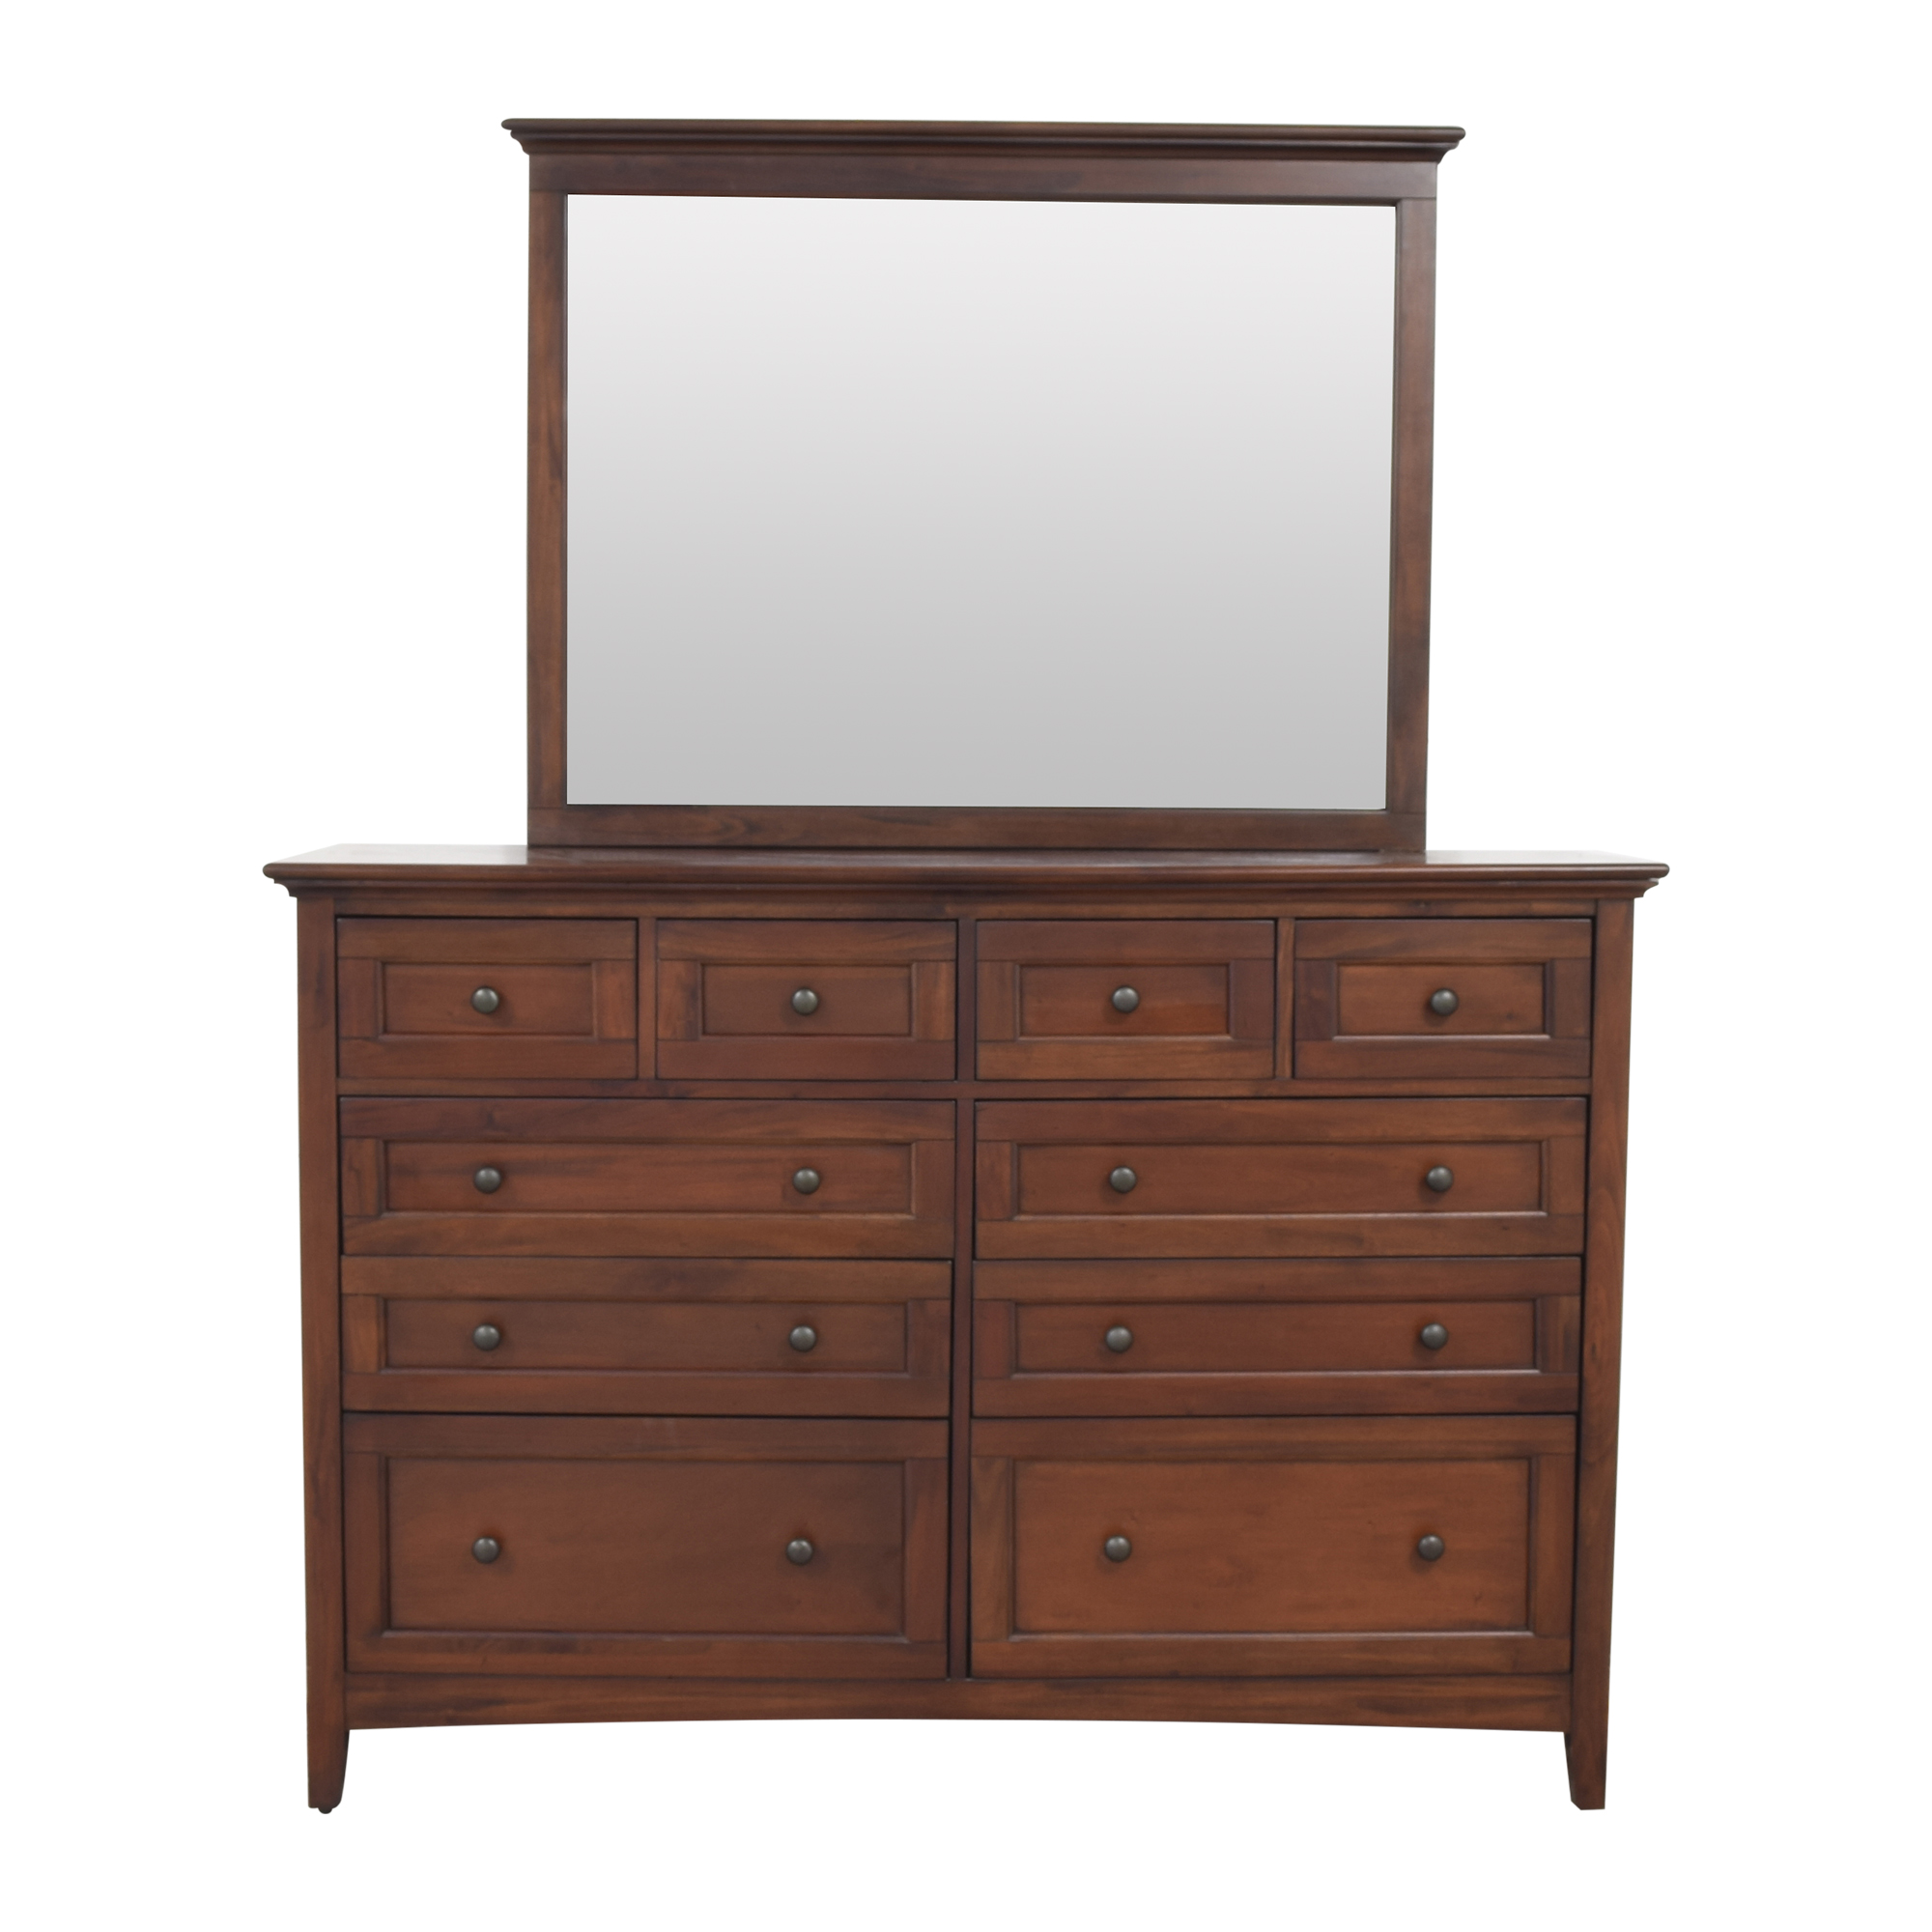 buy A-America Wood Furniture A-America Westlake Bedroom Dresser with Mirror online